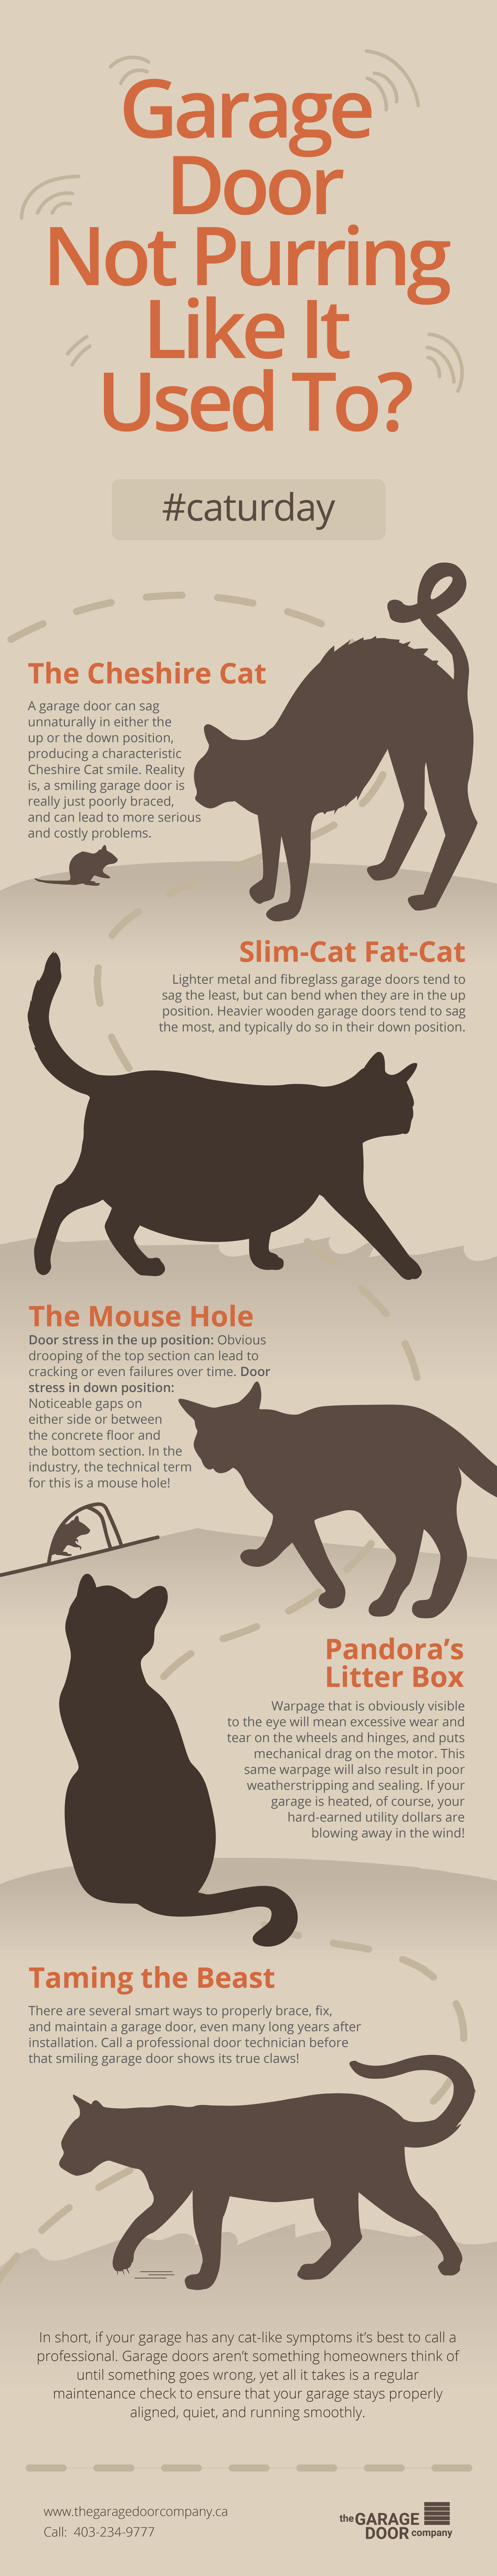 Garage Door Not Purring LIke It Use To?  Infographic